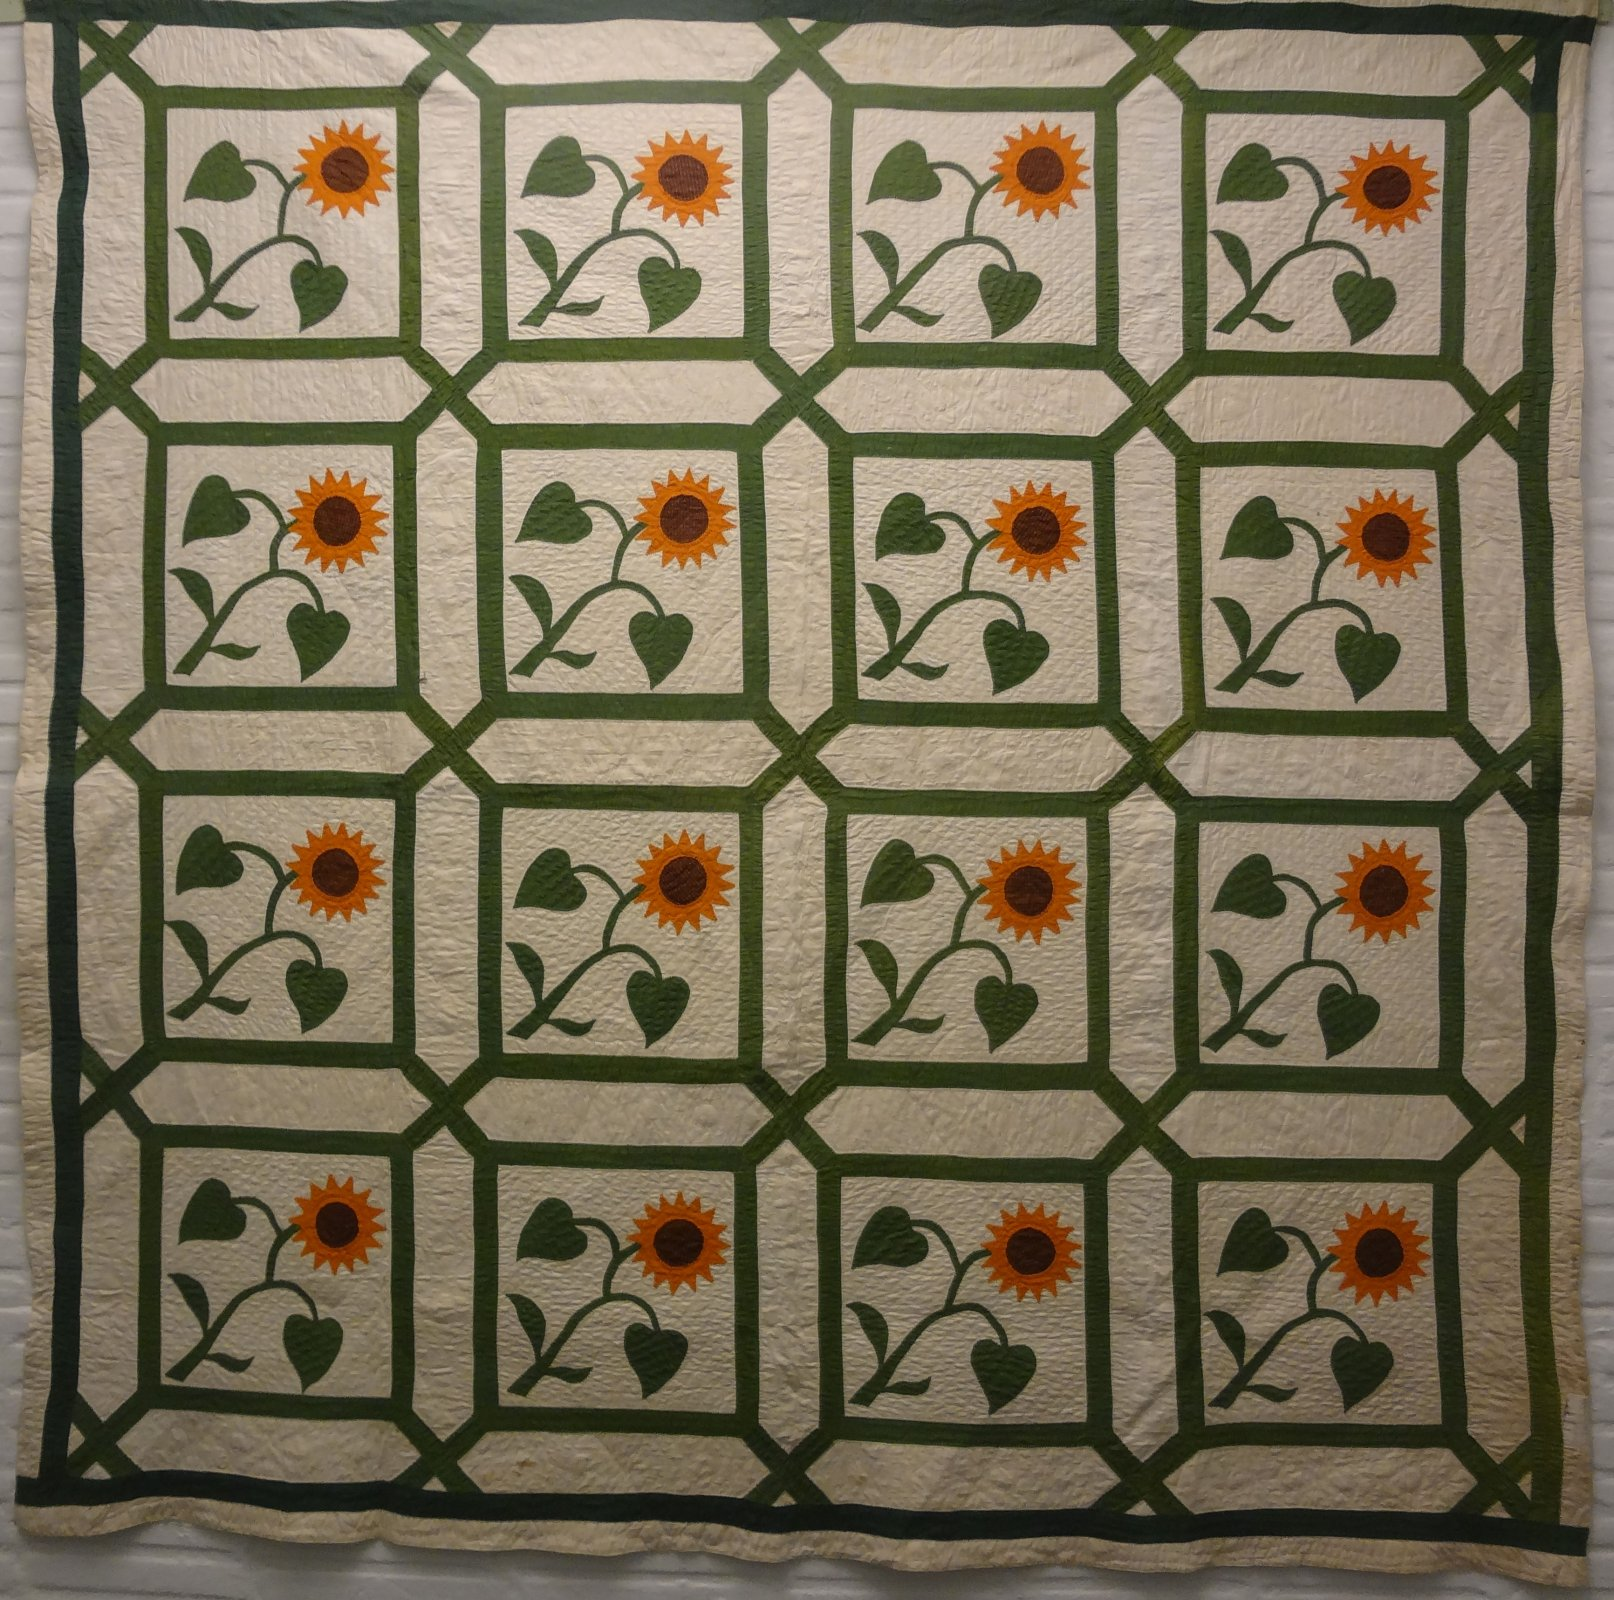 SUNFLOWERS IN A GARDEN MAZE APPLIQUE ANTIQUE QUILT